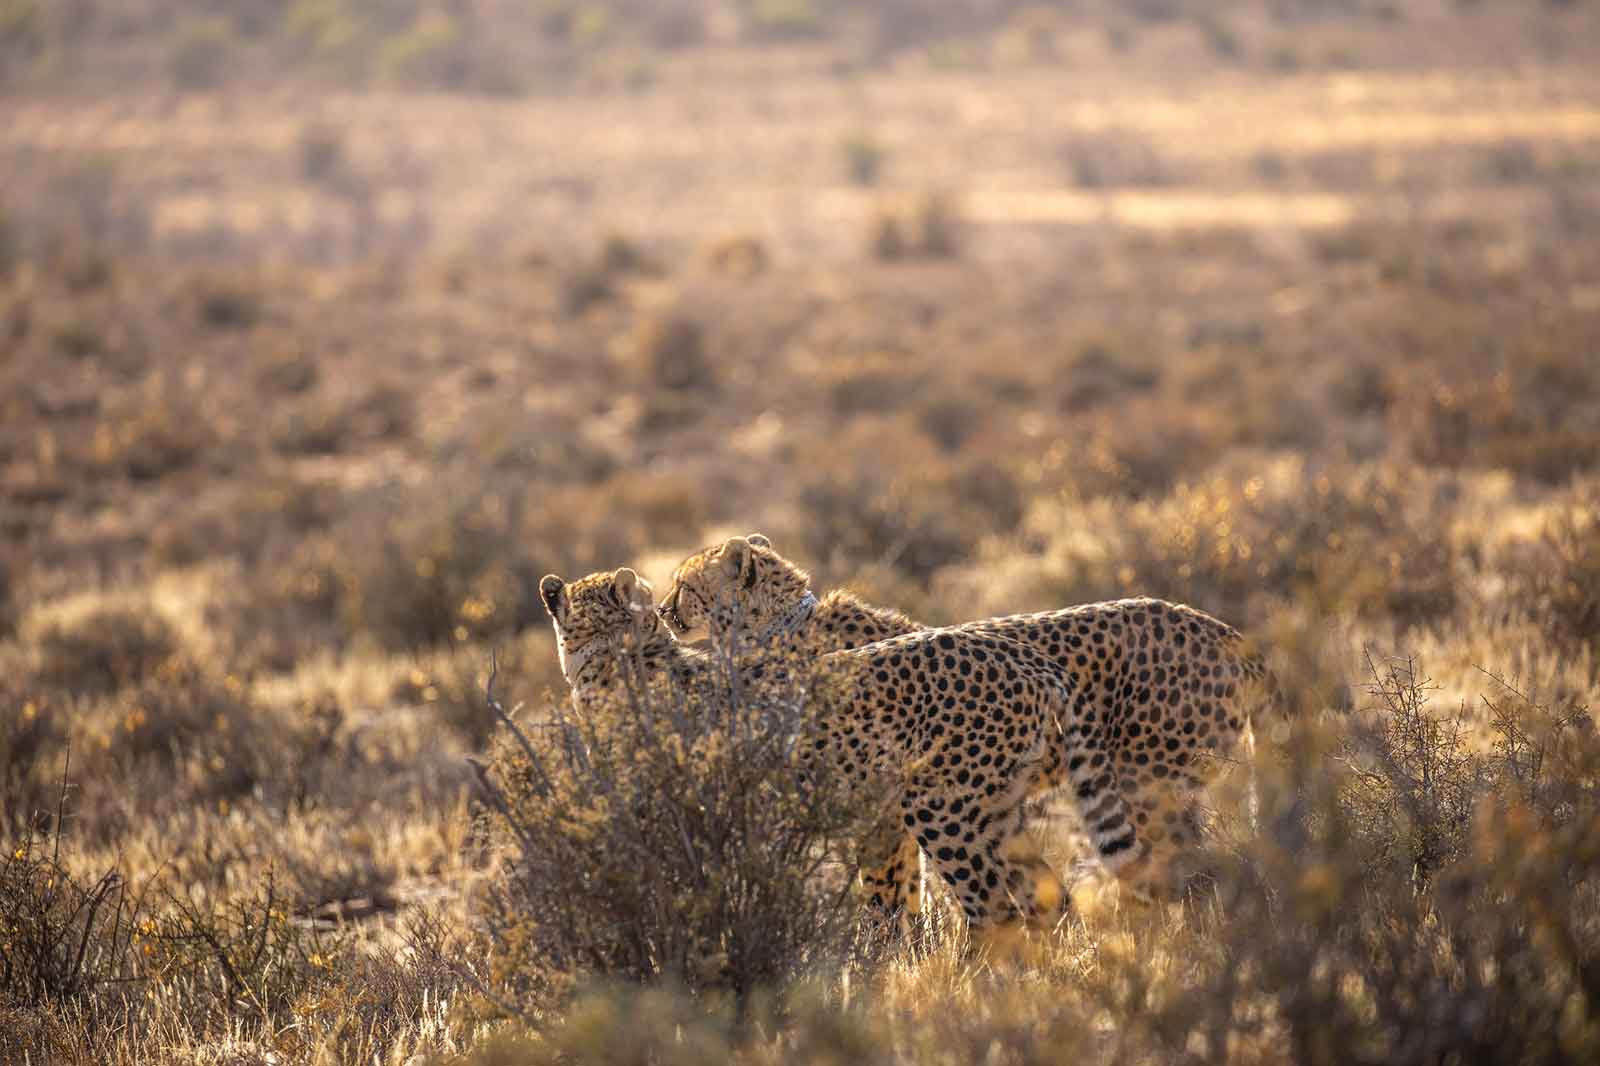 Cheetah Brothers in the Karoo